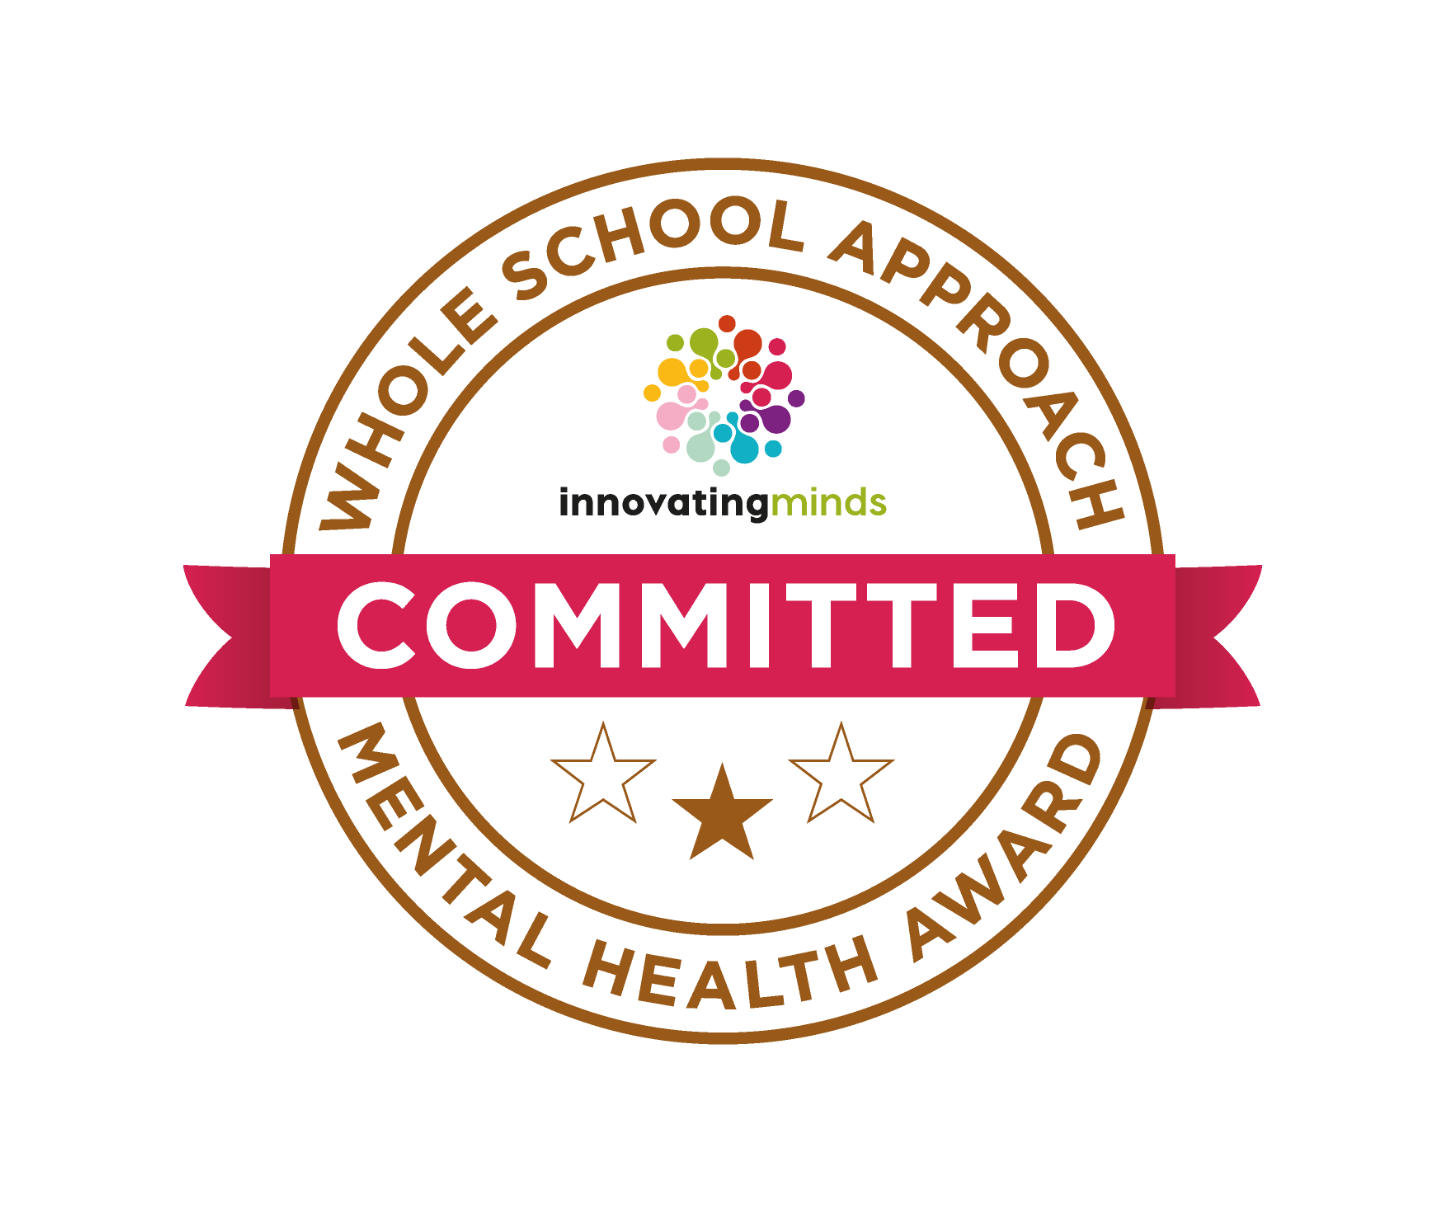 Committed-Accreditation-Edupod